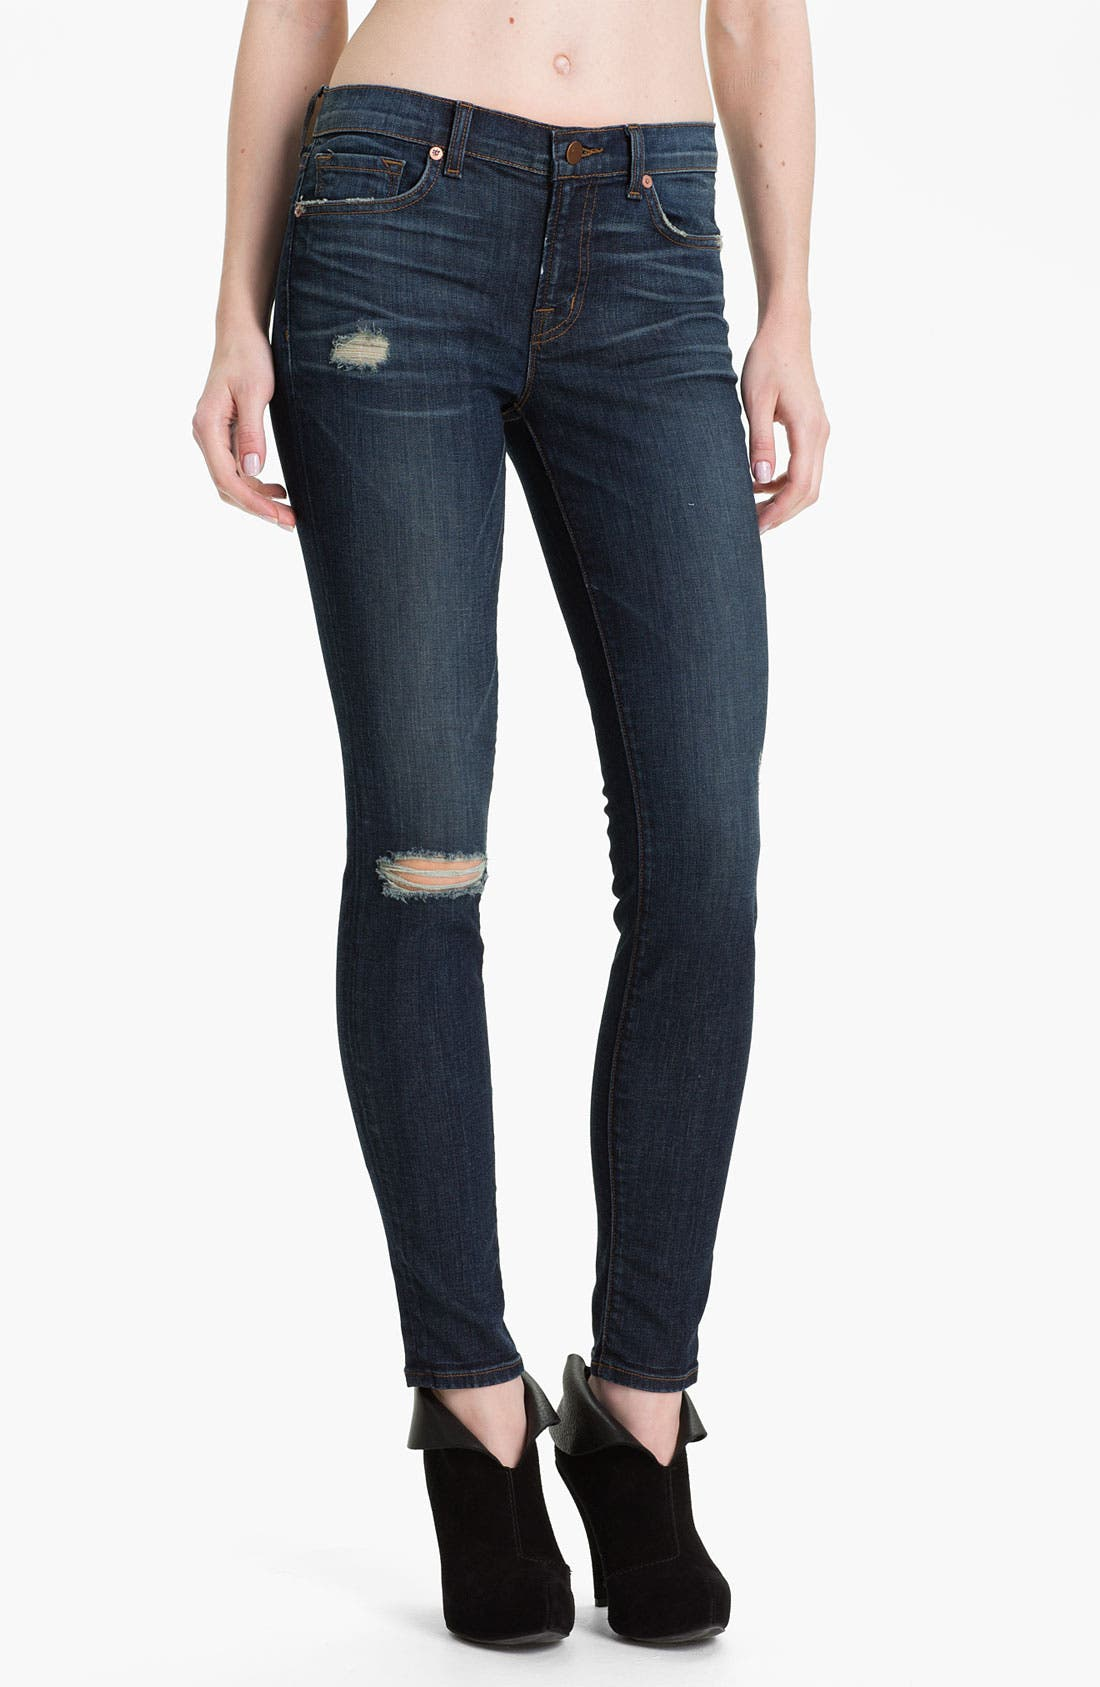 Alternate Image 1 Selected - J Brand '811' Skinny Stretch Jeans (Salem)